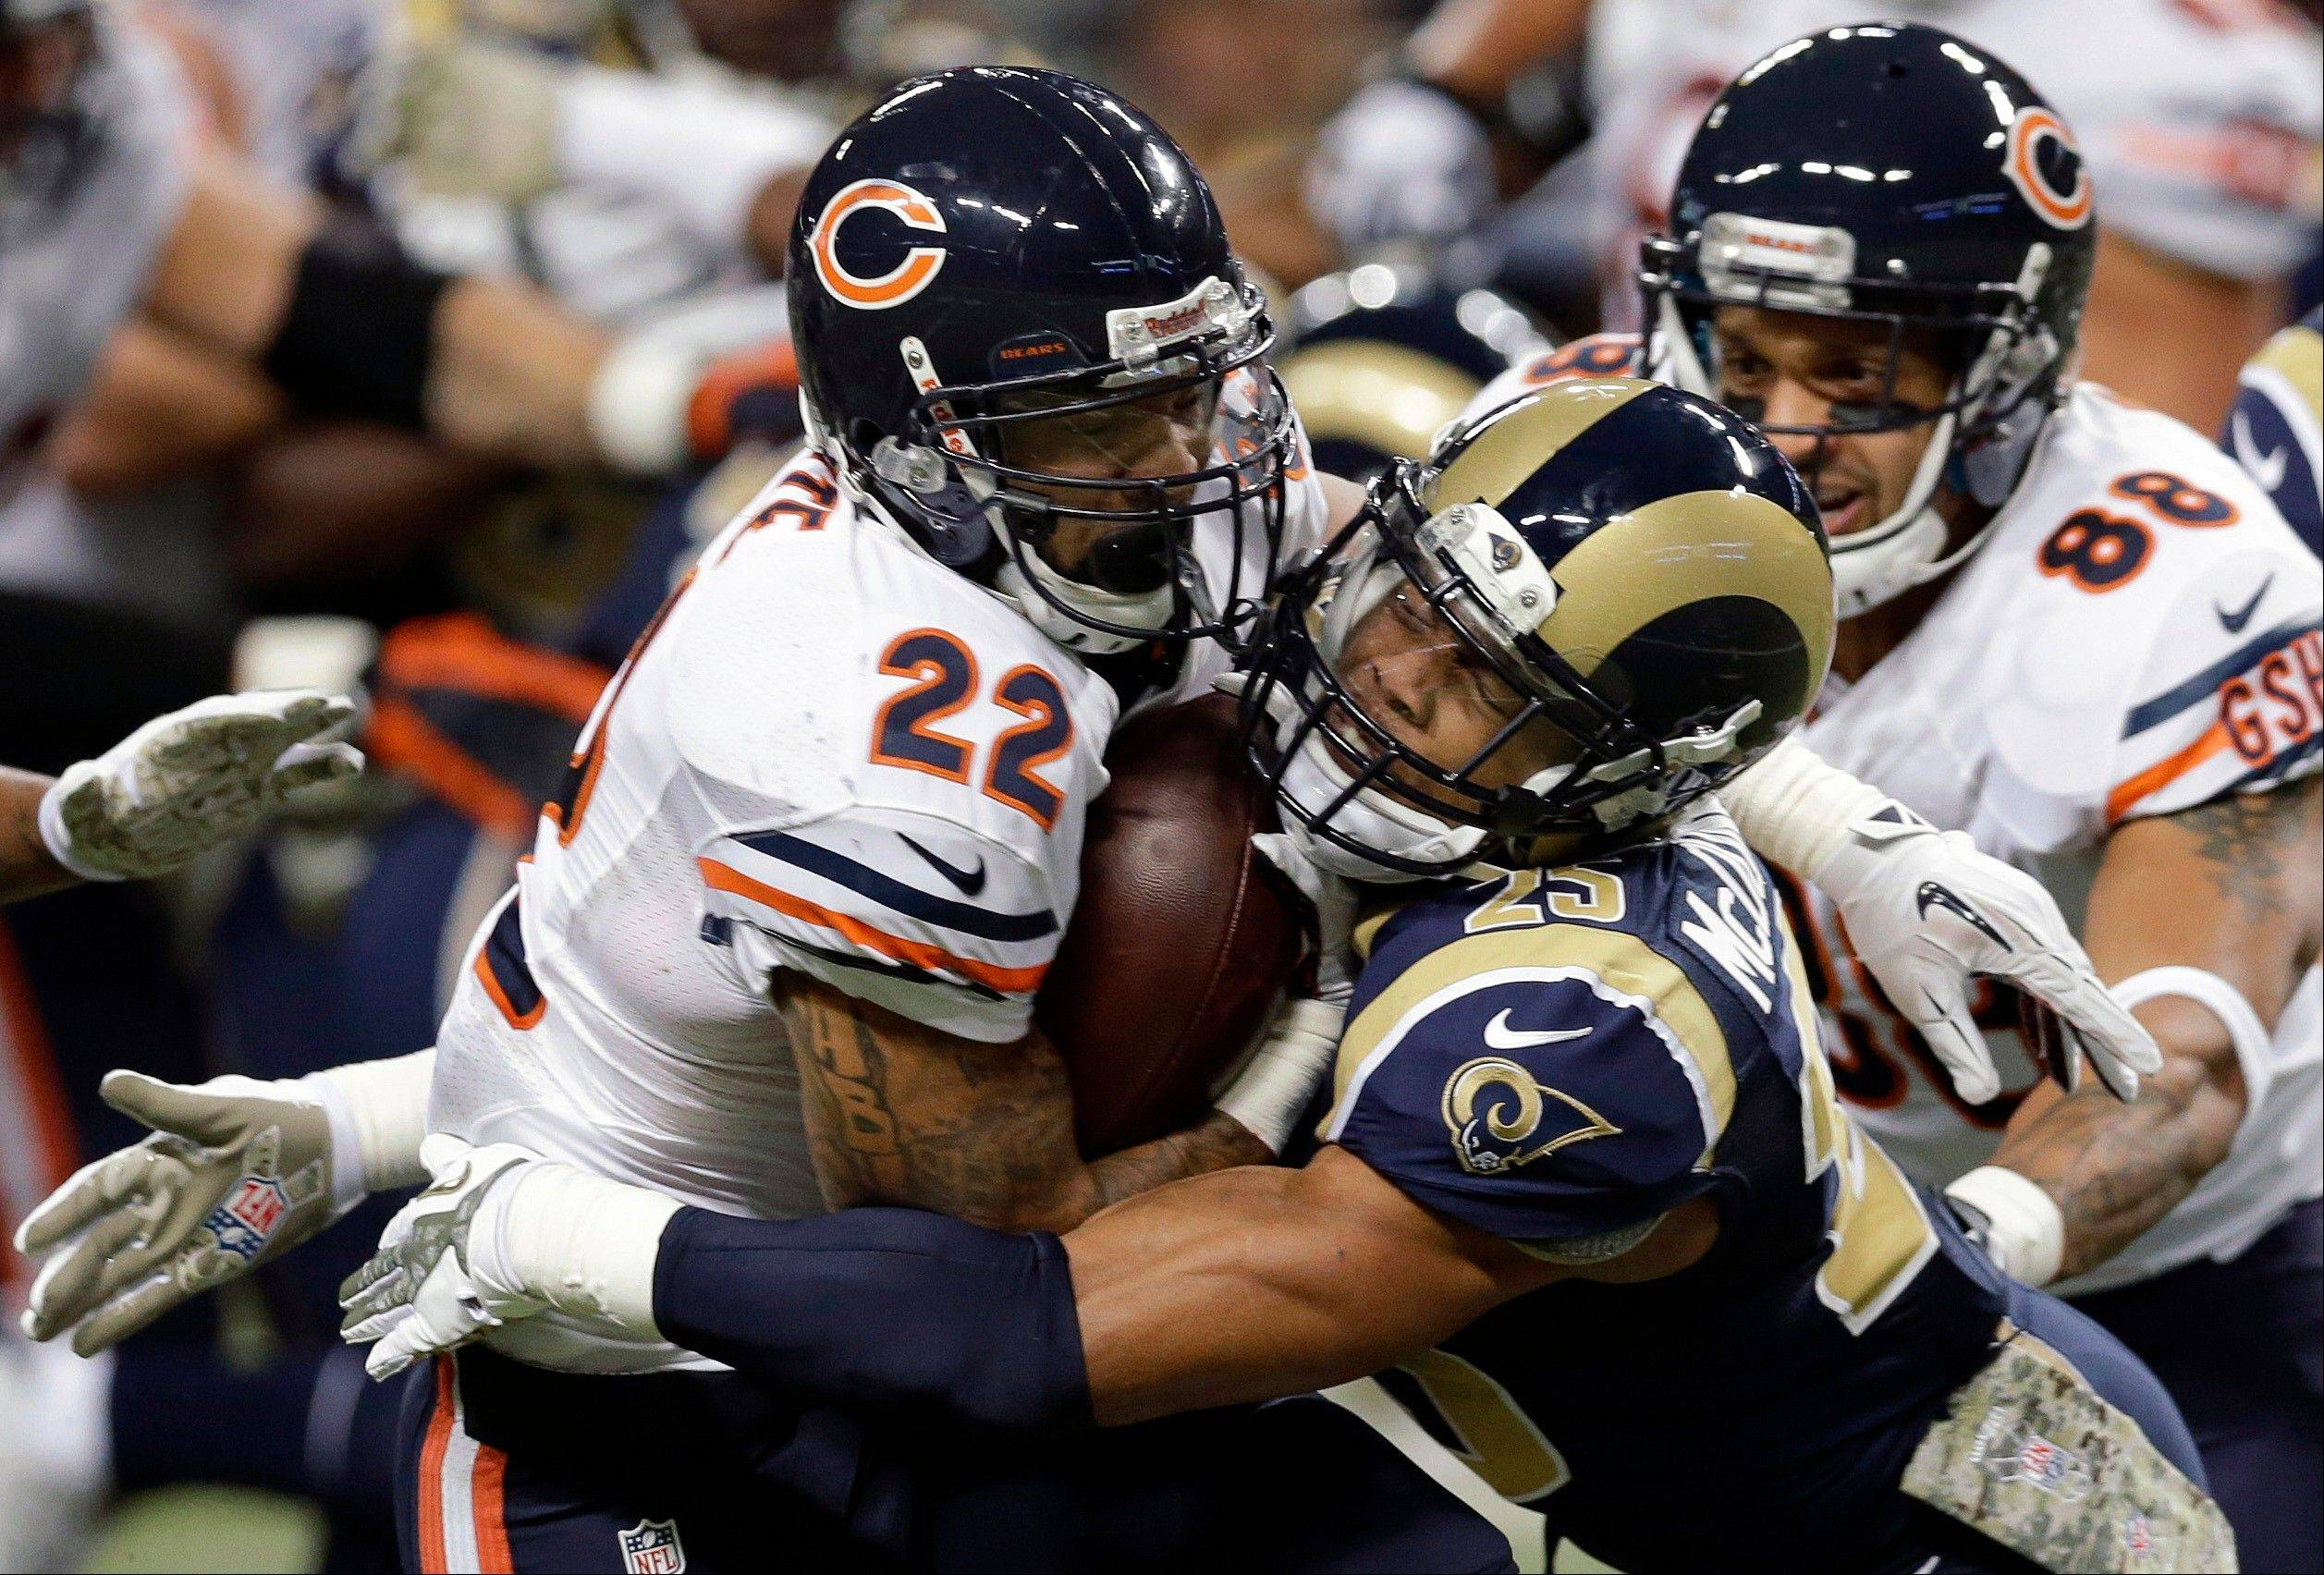 Chicago Bears running back Matt Forte, left, runs with the ball as he is pulled down by St. Louis Rams safety T.J. McDonald during the first quarter.